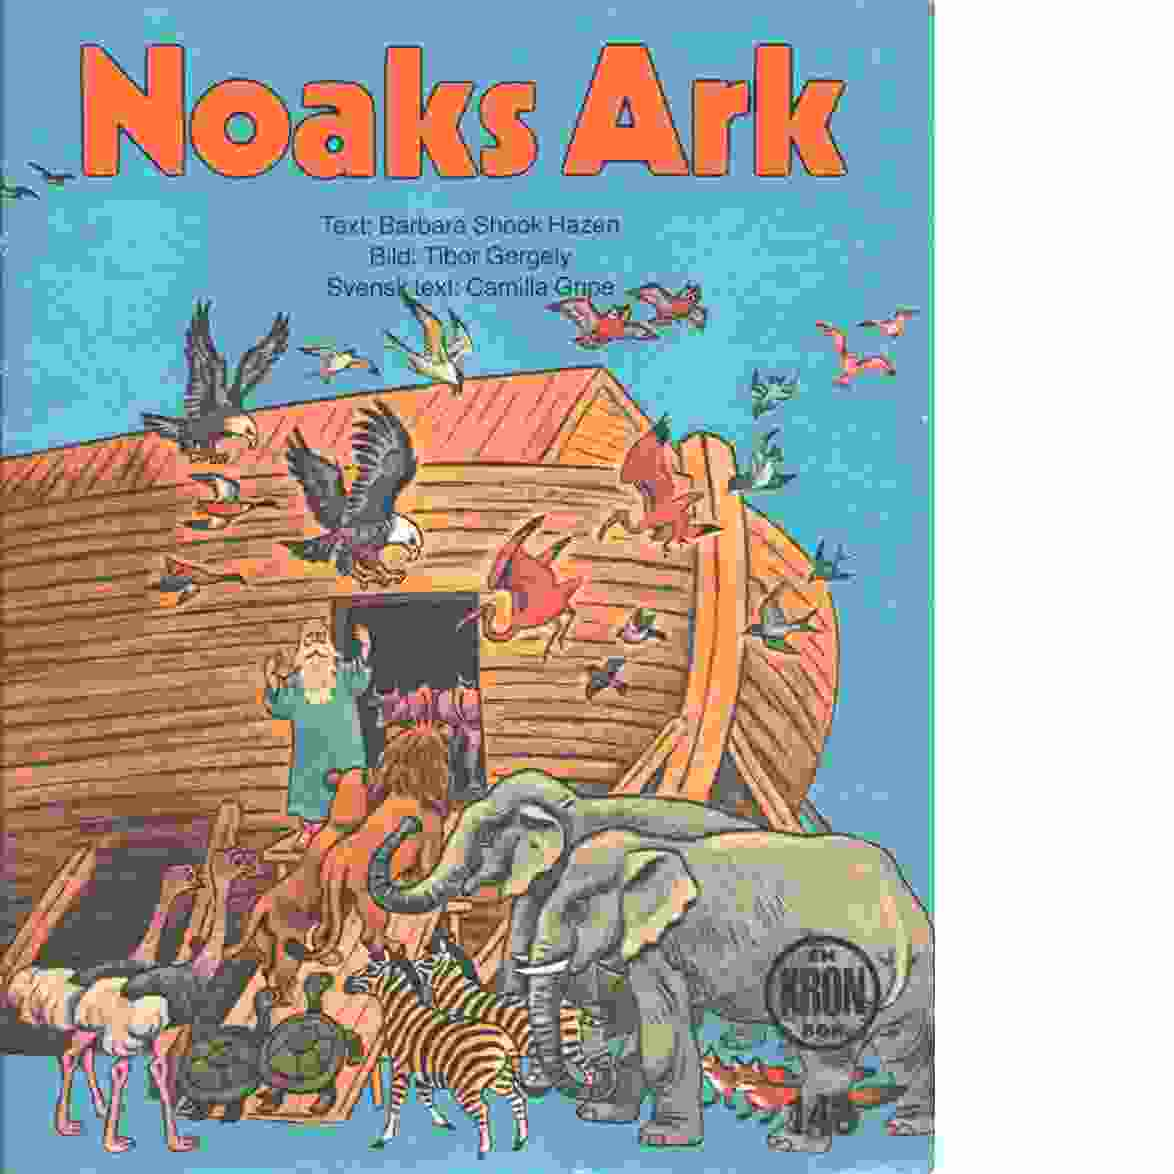 Noaks ark - Hazen, Barbara Shook